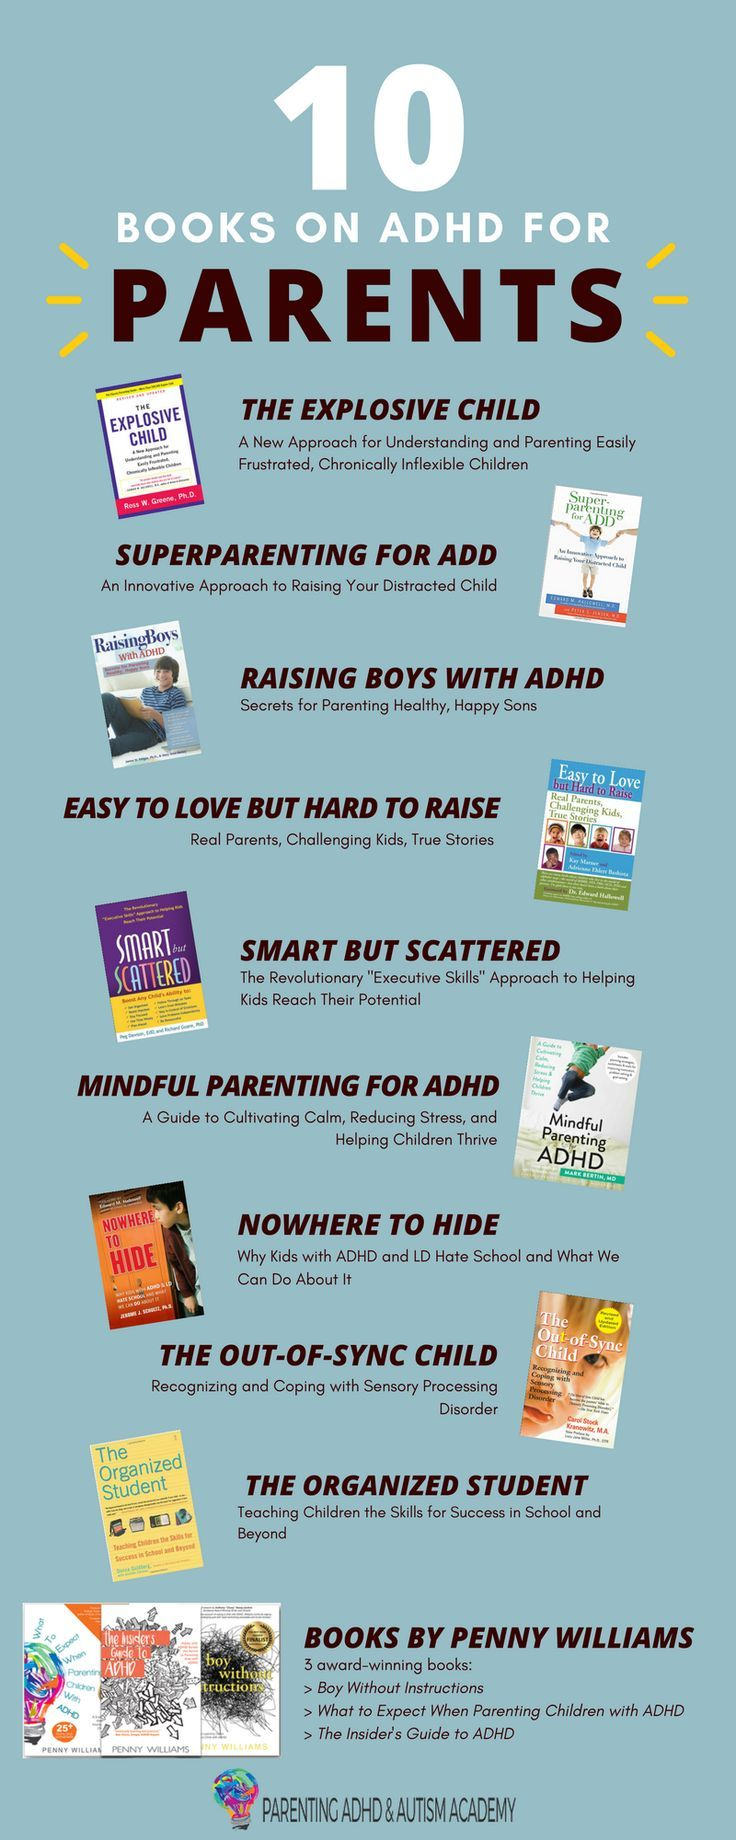 Just How Common Is Adhd Really New >> Top 10 Books On Raising A Child With Adhd A List Compiled By A Mom